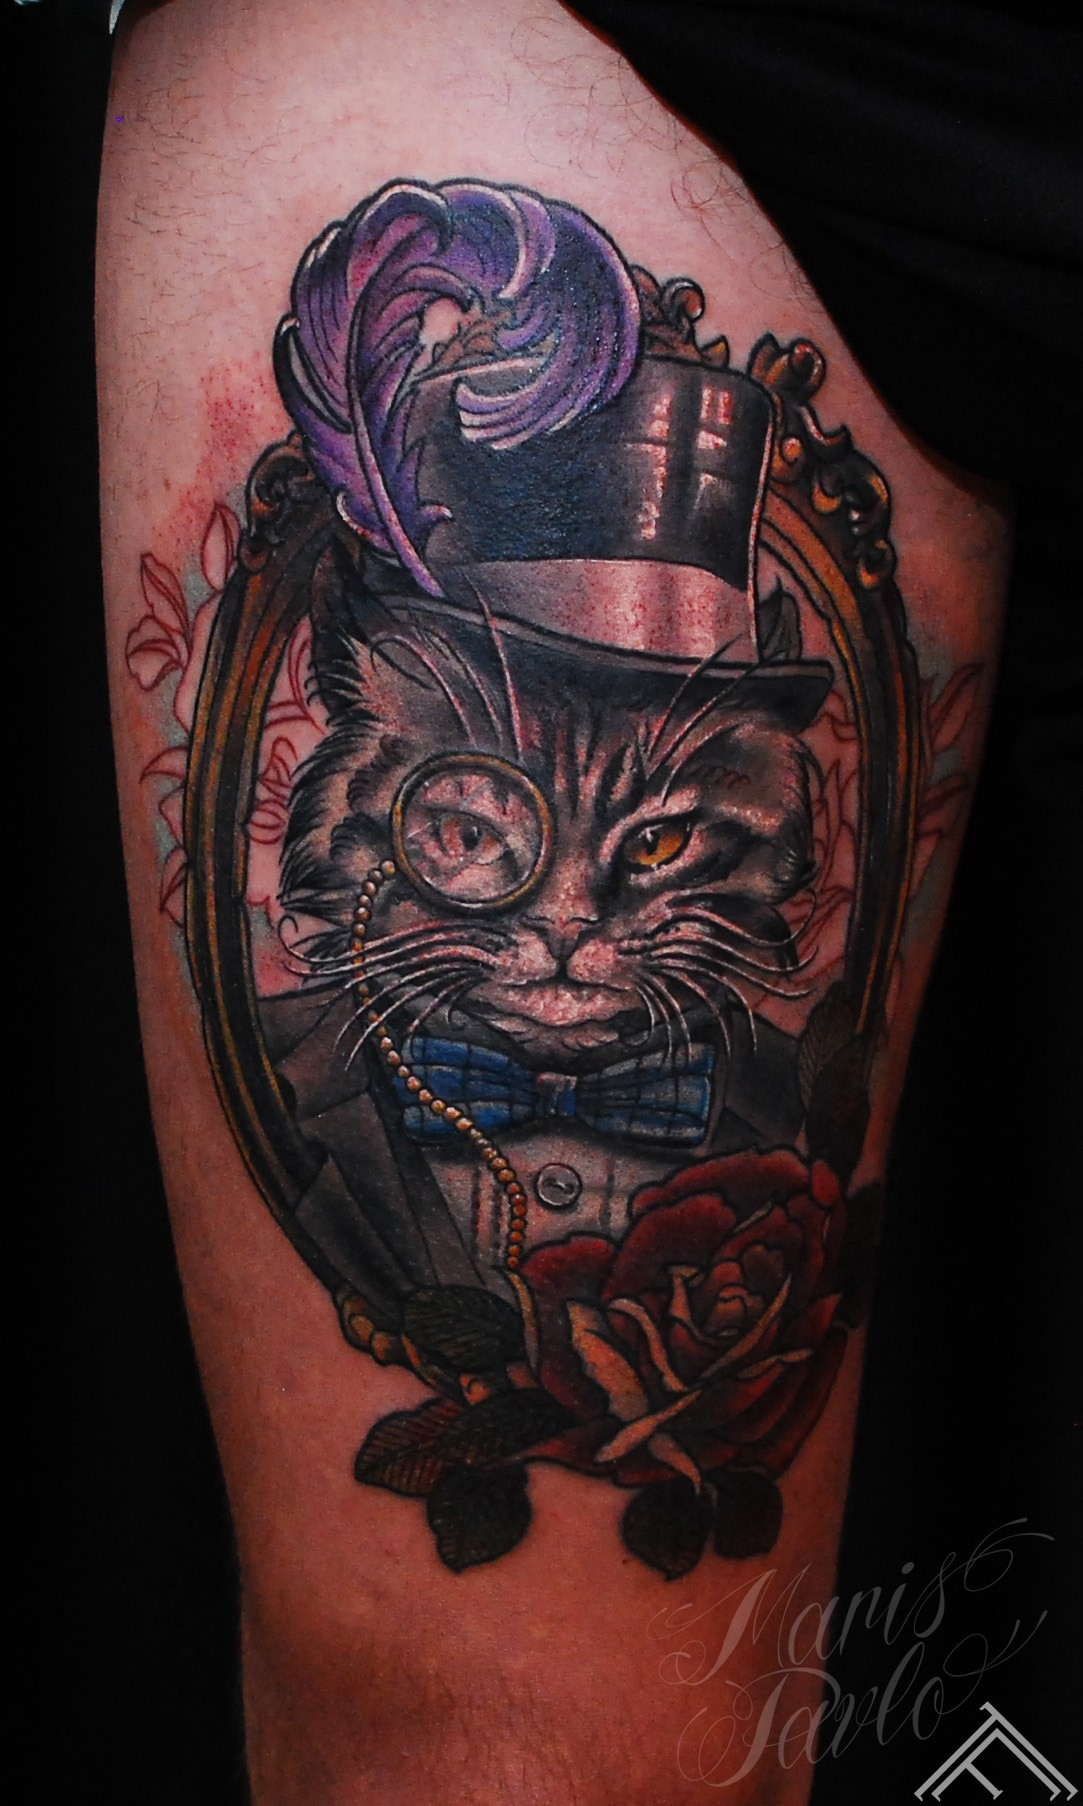 Tattoo_newtradicional_cat_monocle_feather_gentleman_marispavlo_tattoofrequency